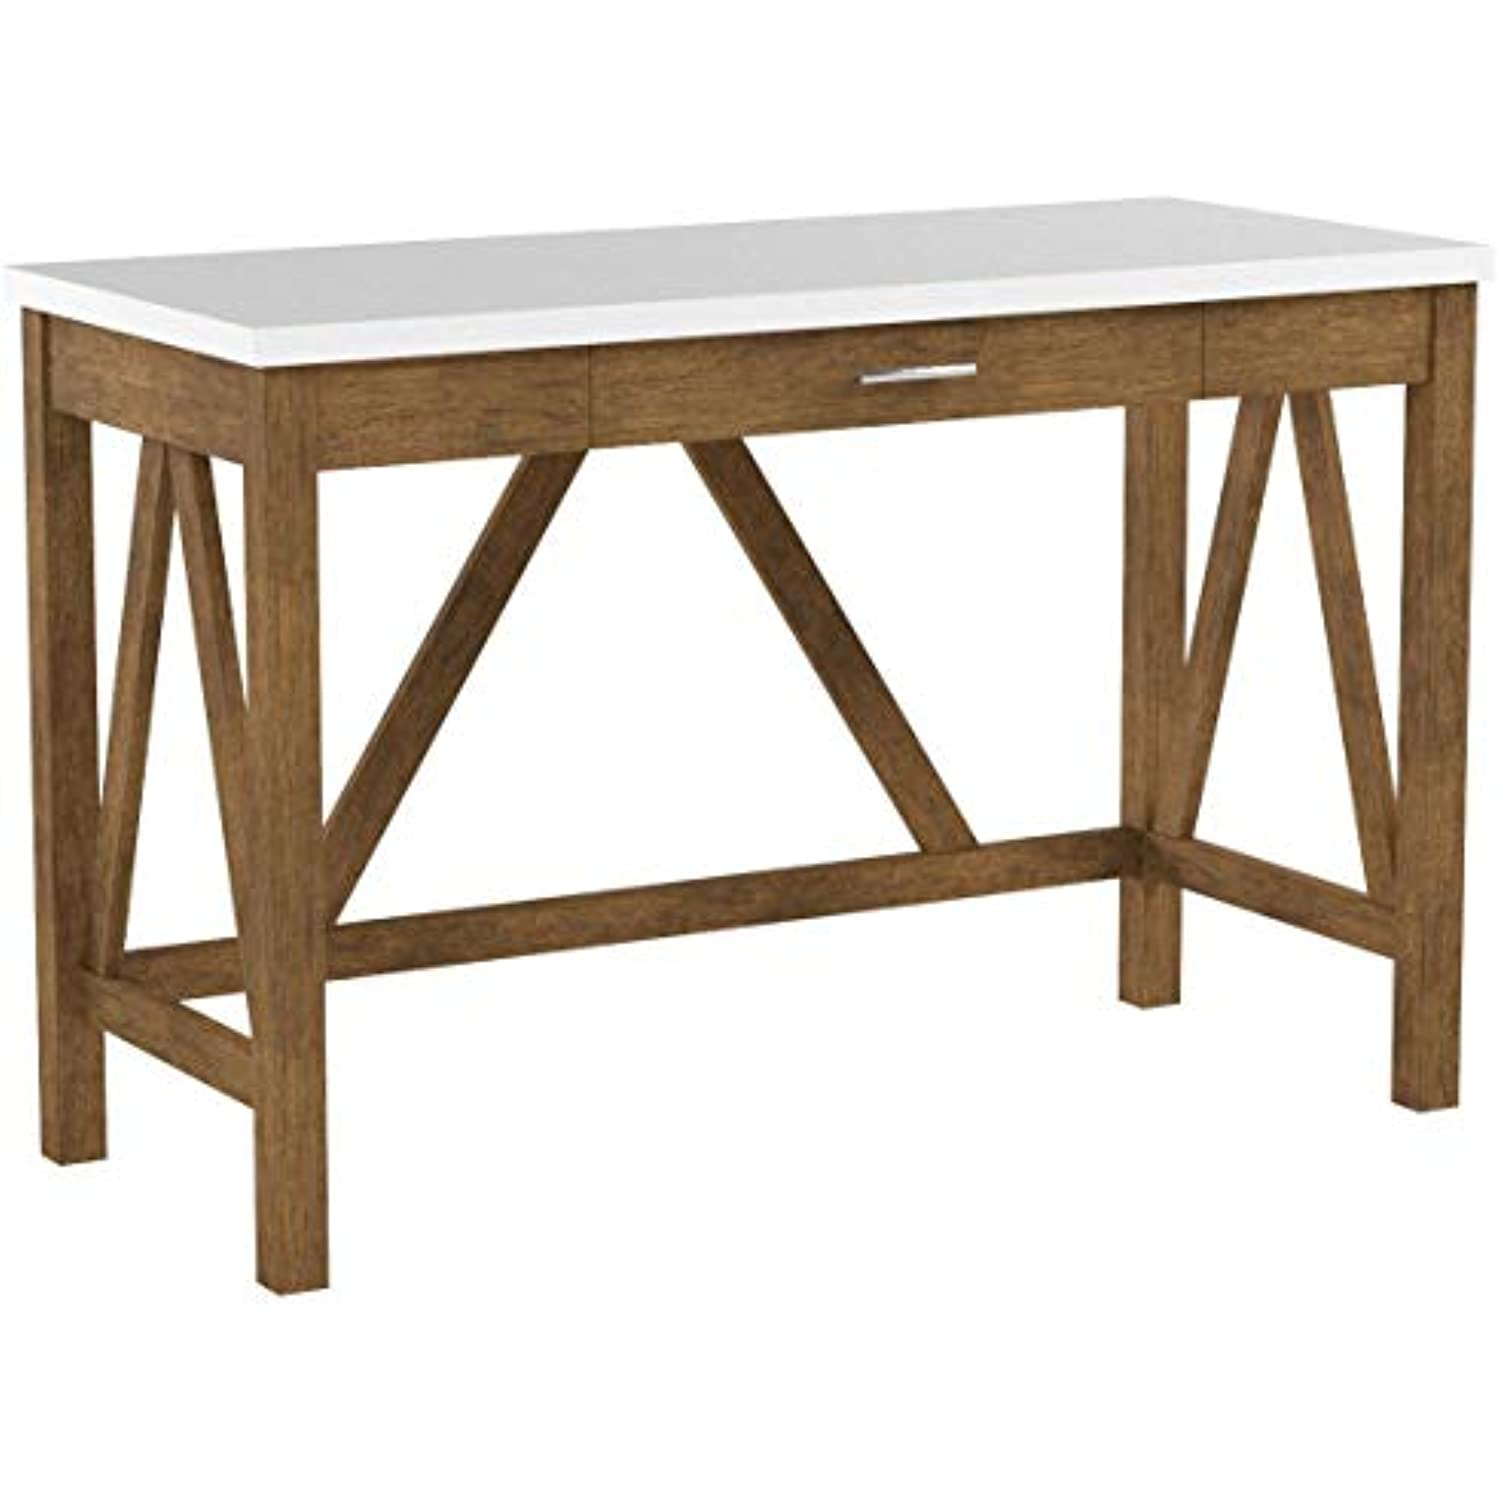 Walker Edison Furniture Rustic Farmhouse Wood Computer Writing Desk Office, 46 Inch - Walnut Brown, White Marble